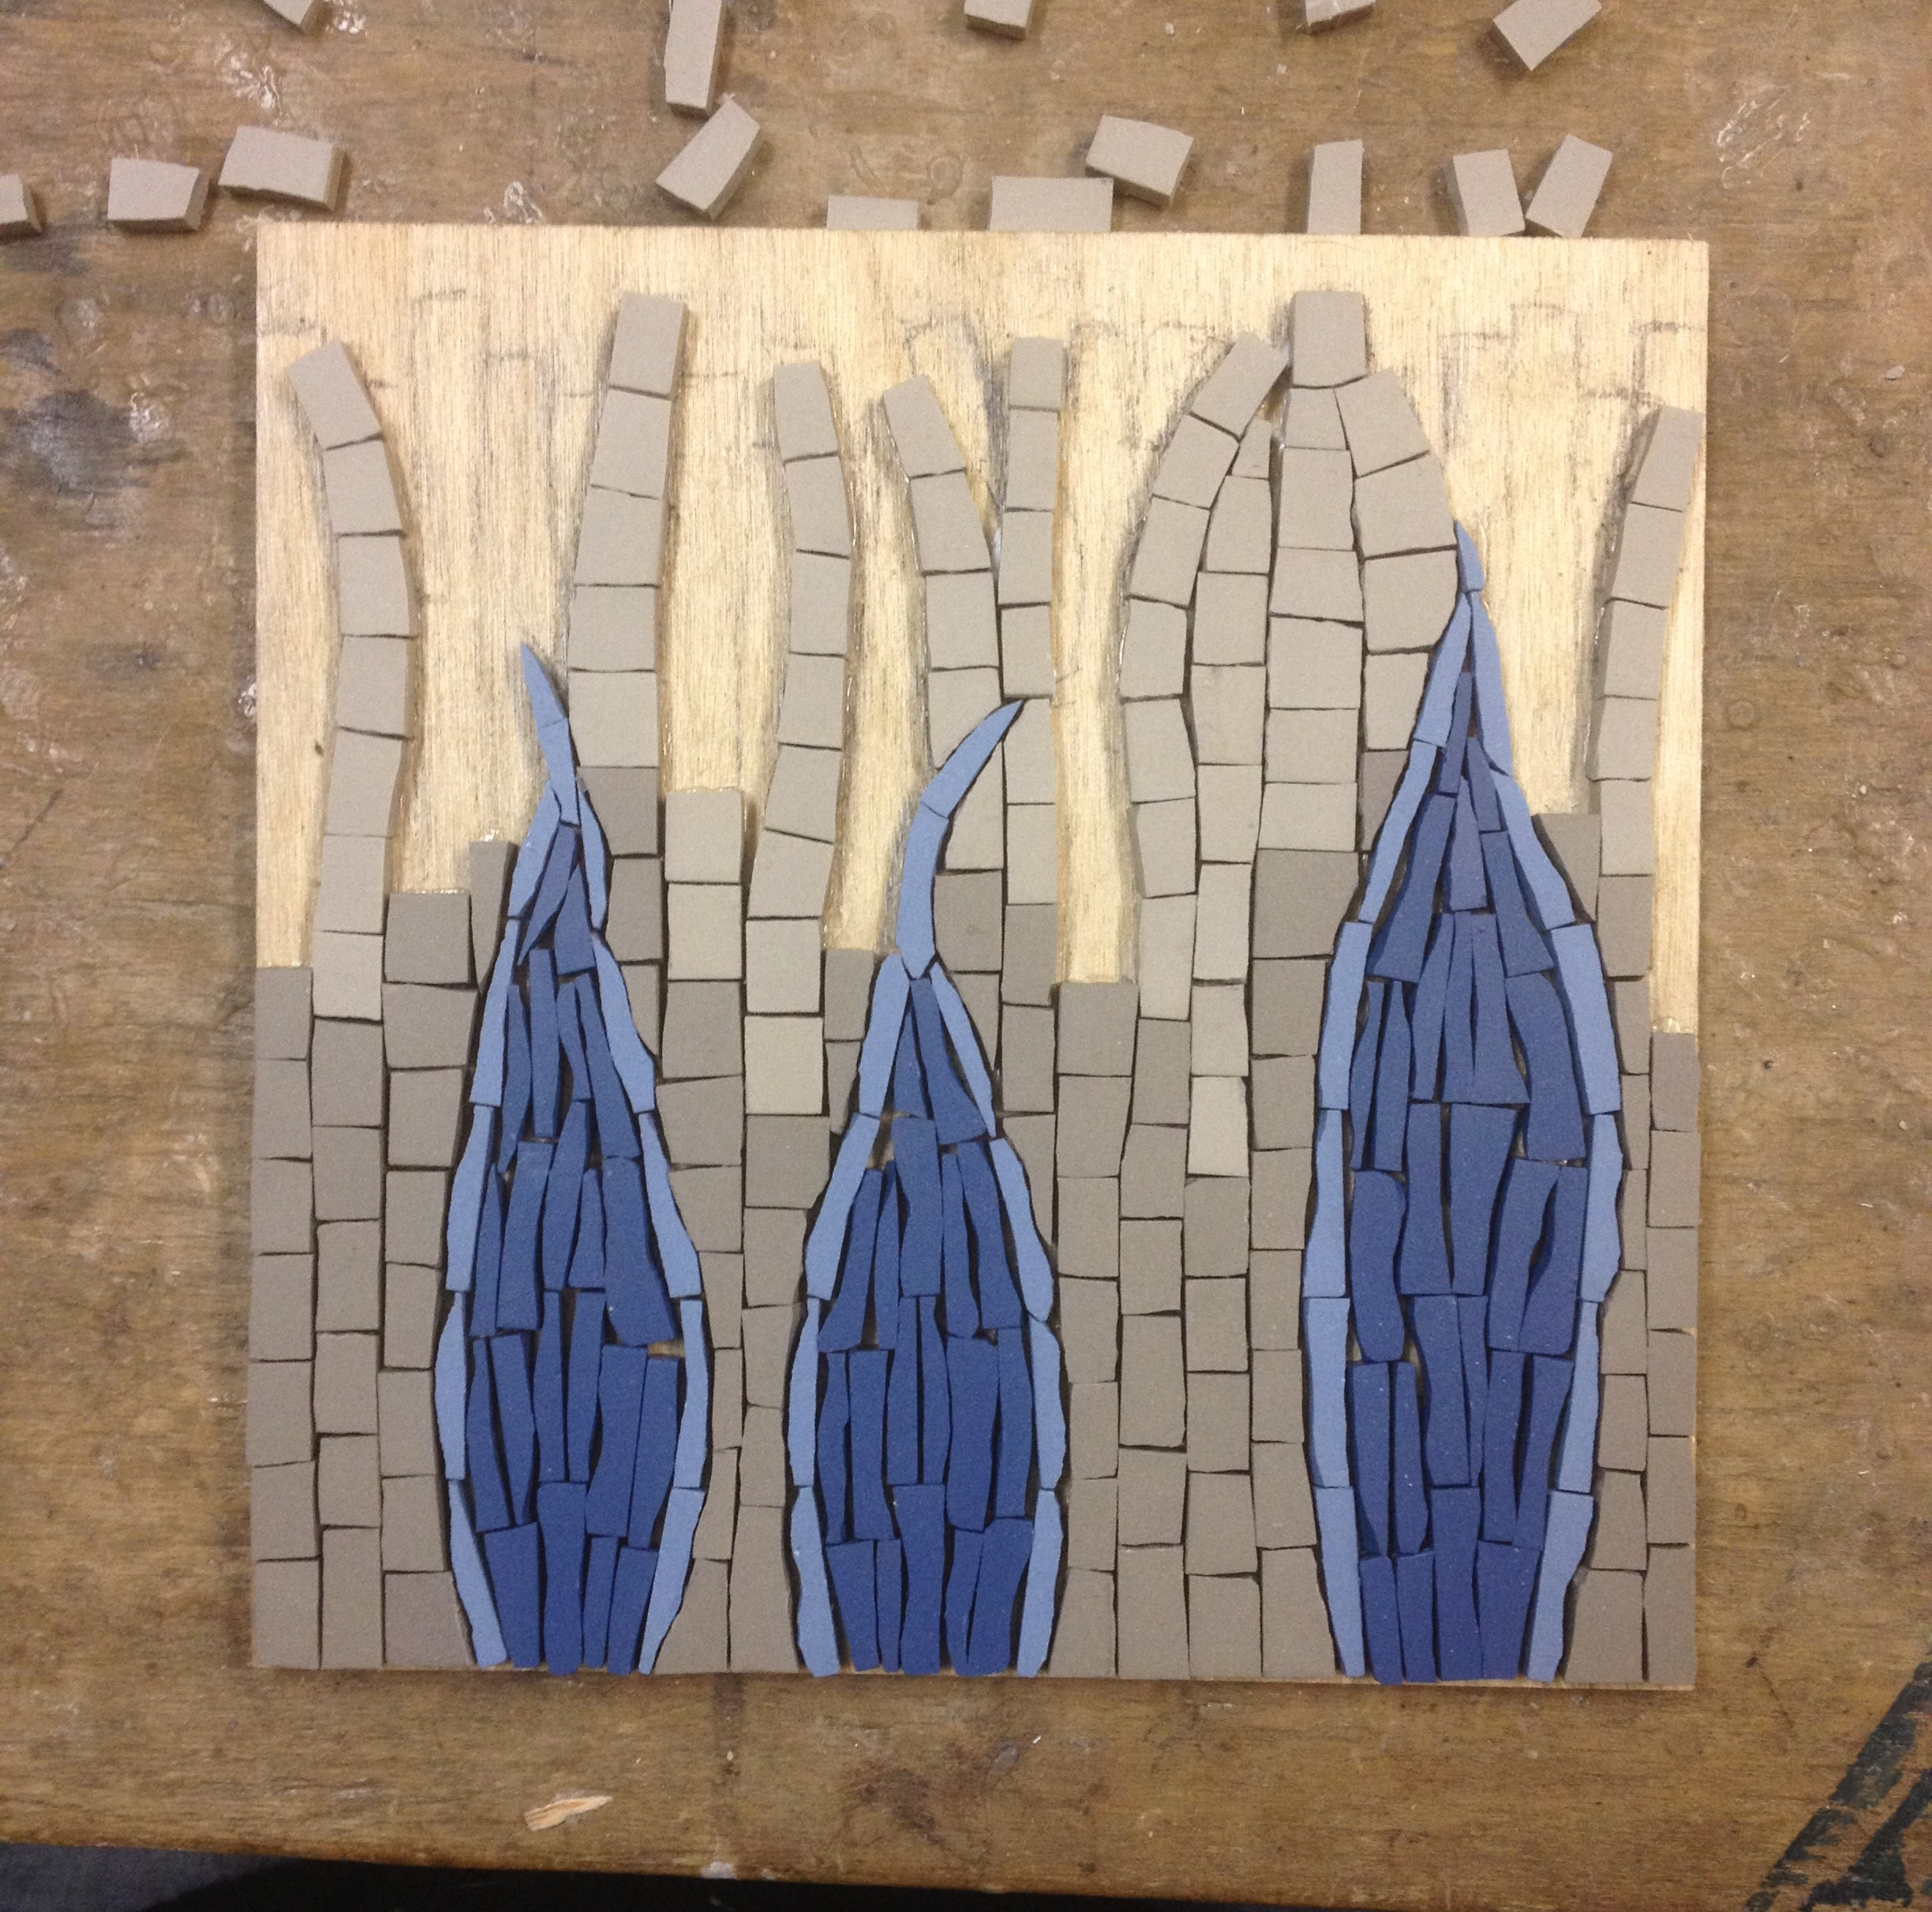 Rods & cones/ photoreceptor cells mosaic in process